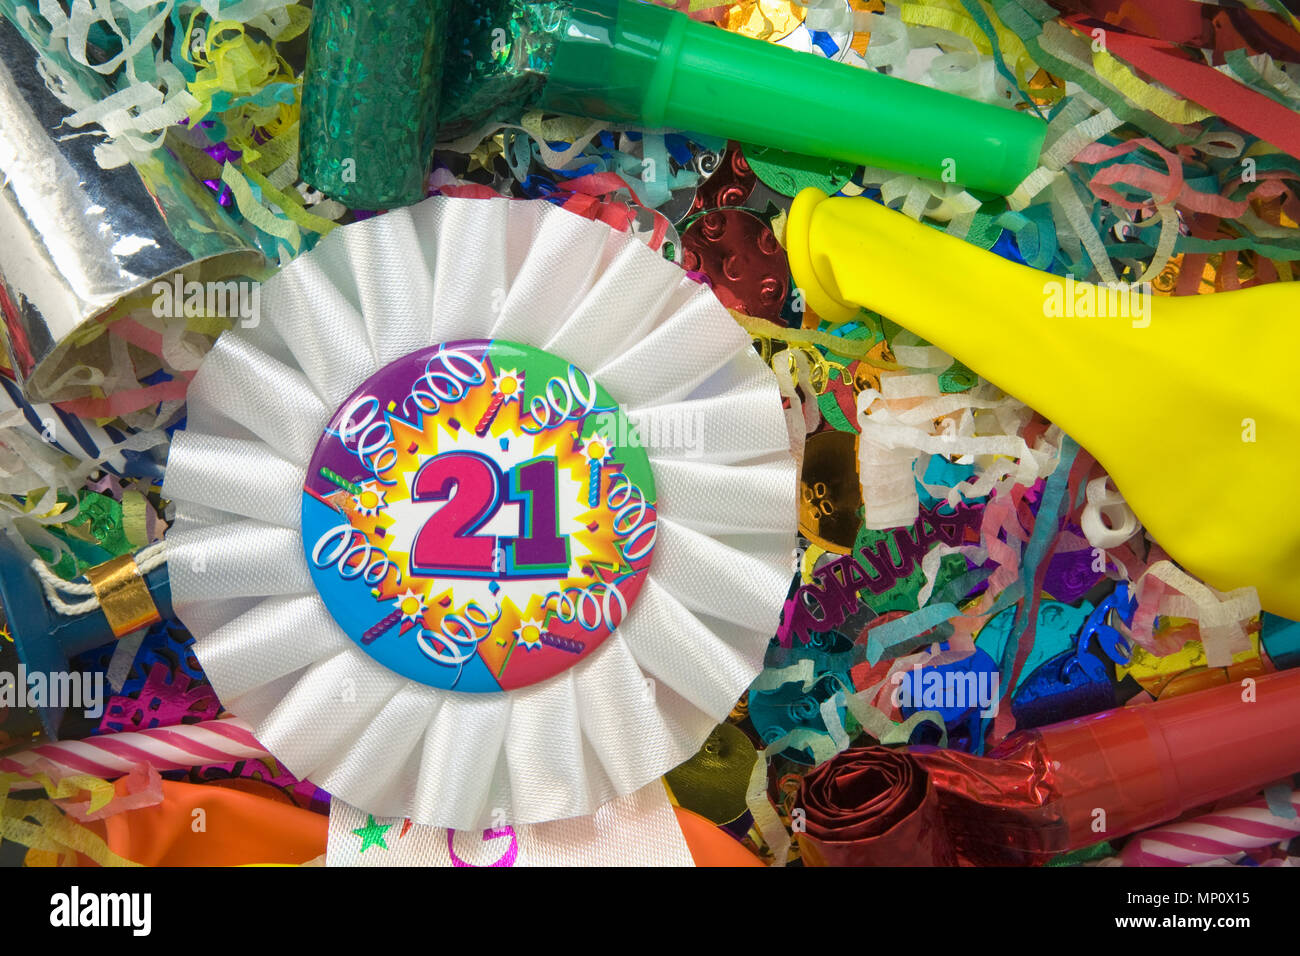 Close Up Shot Of A 21st Birthday Ribbon Rosette Surrounded By Party Decorations